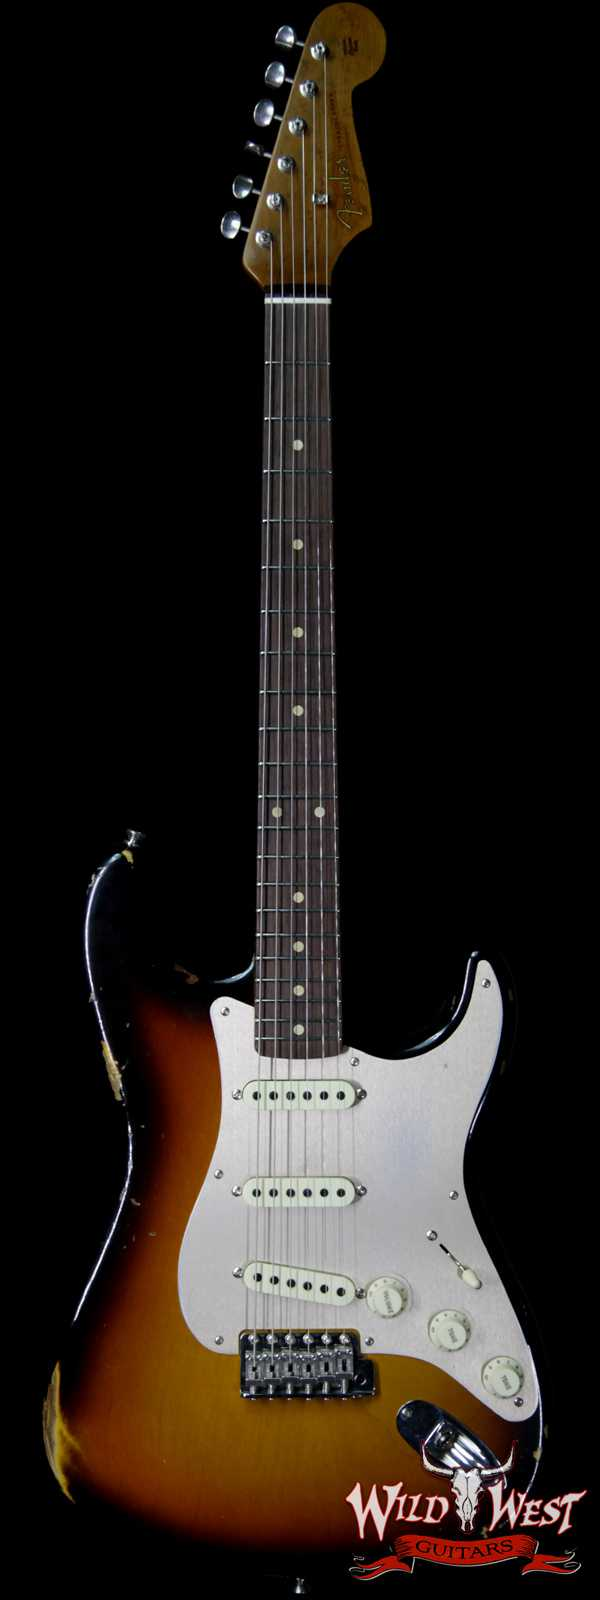 Fender Custom Shop Roasted 1960 Stratocaster Relic Birdseye Neck AAA Rosewood Slab Board 3 Tone Sunburst